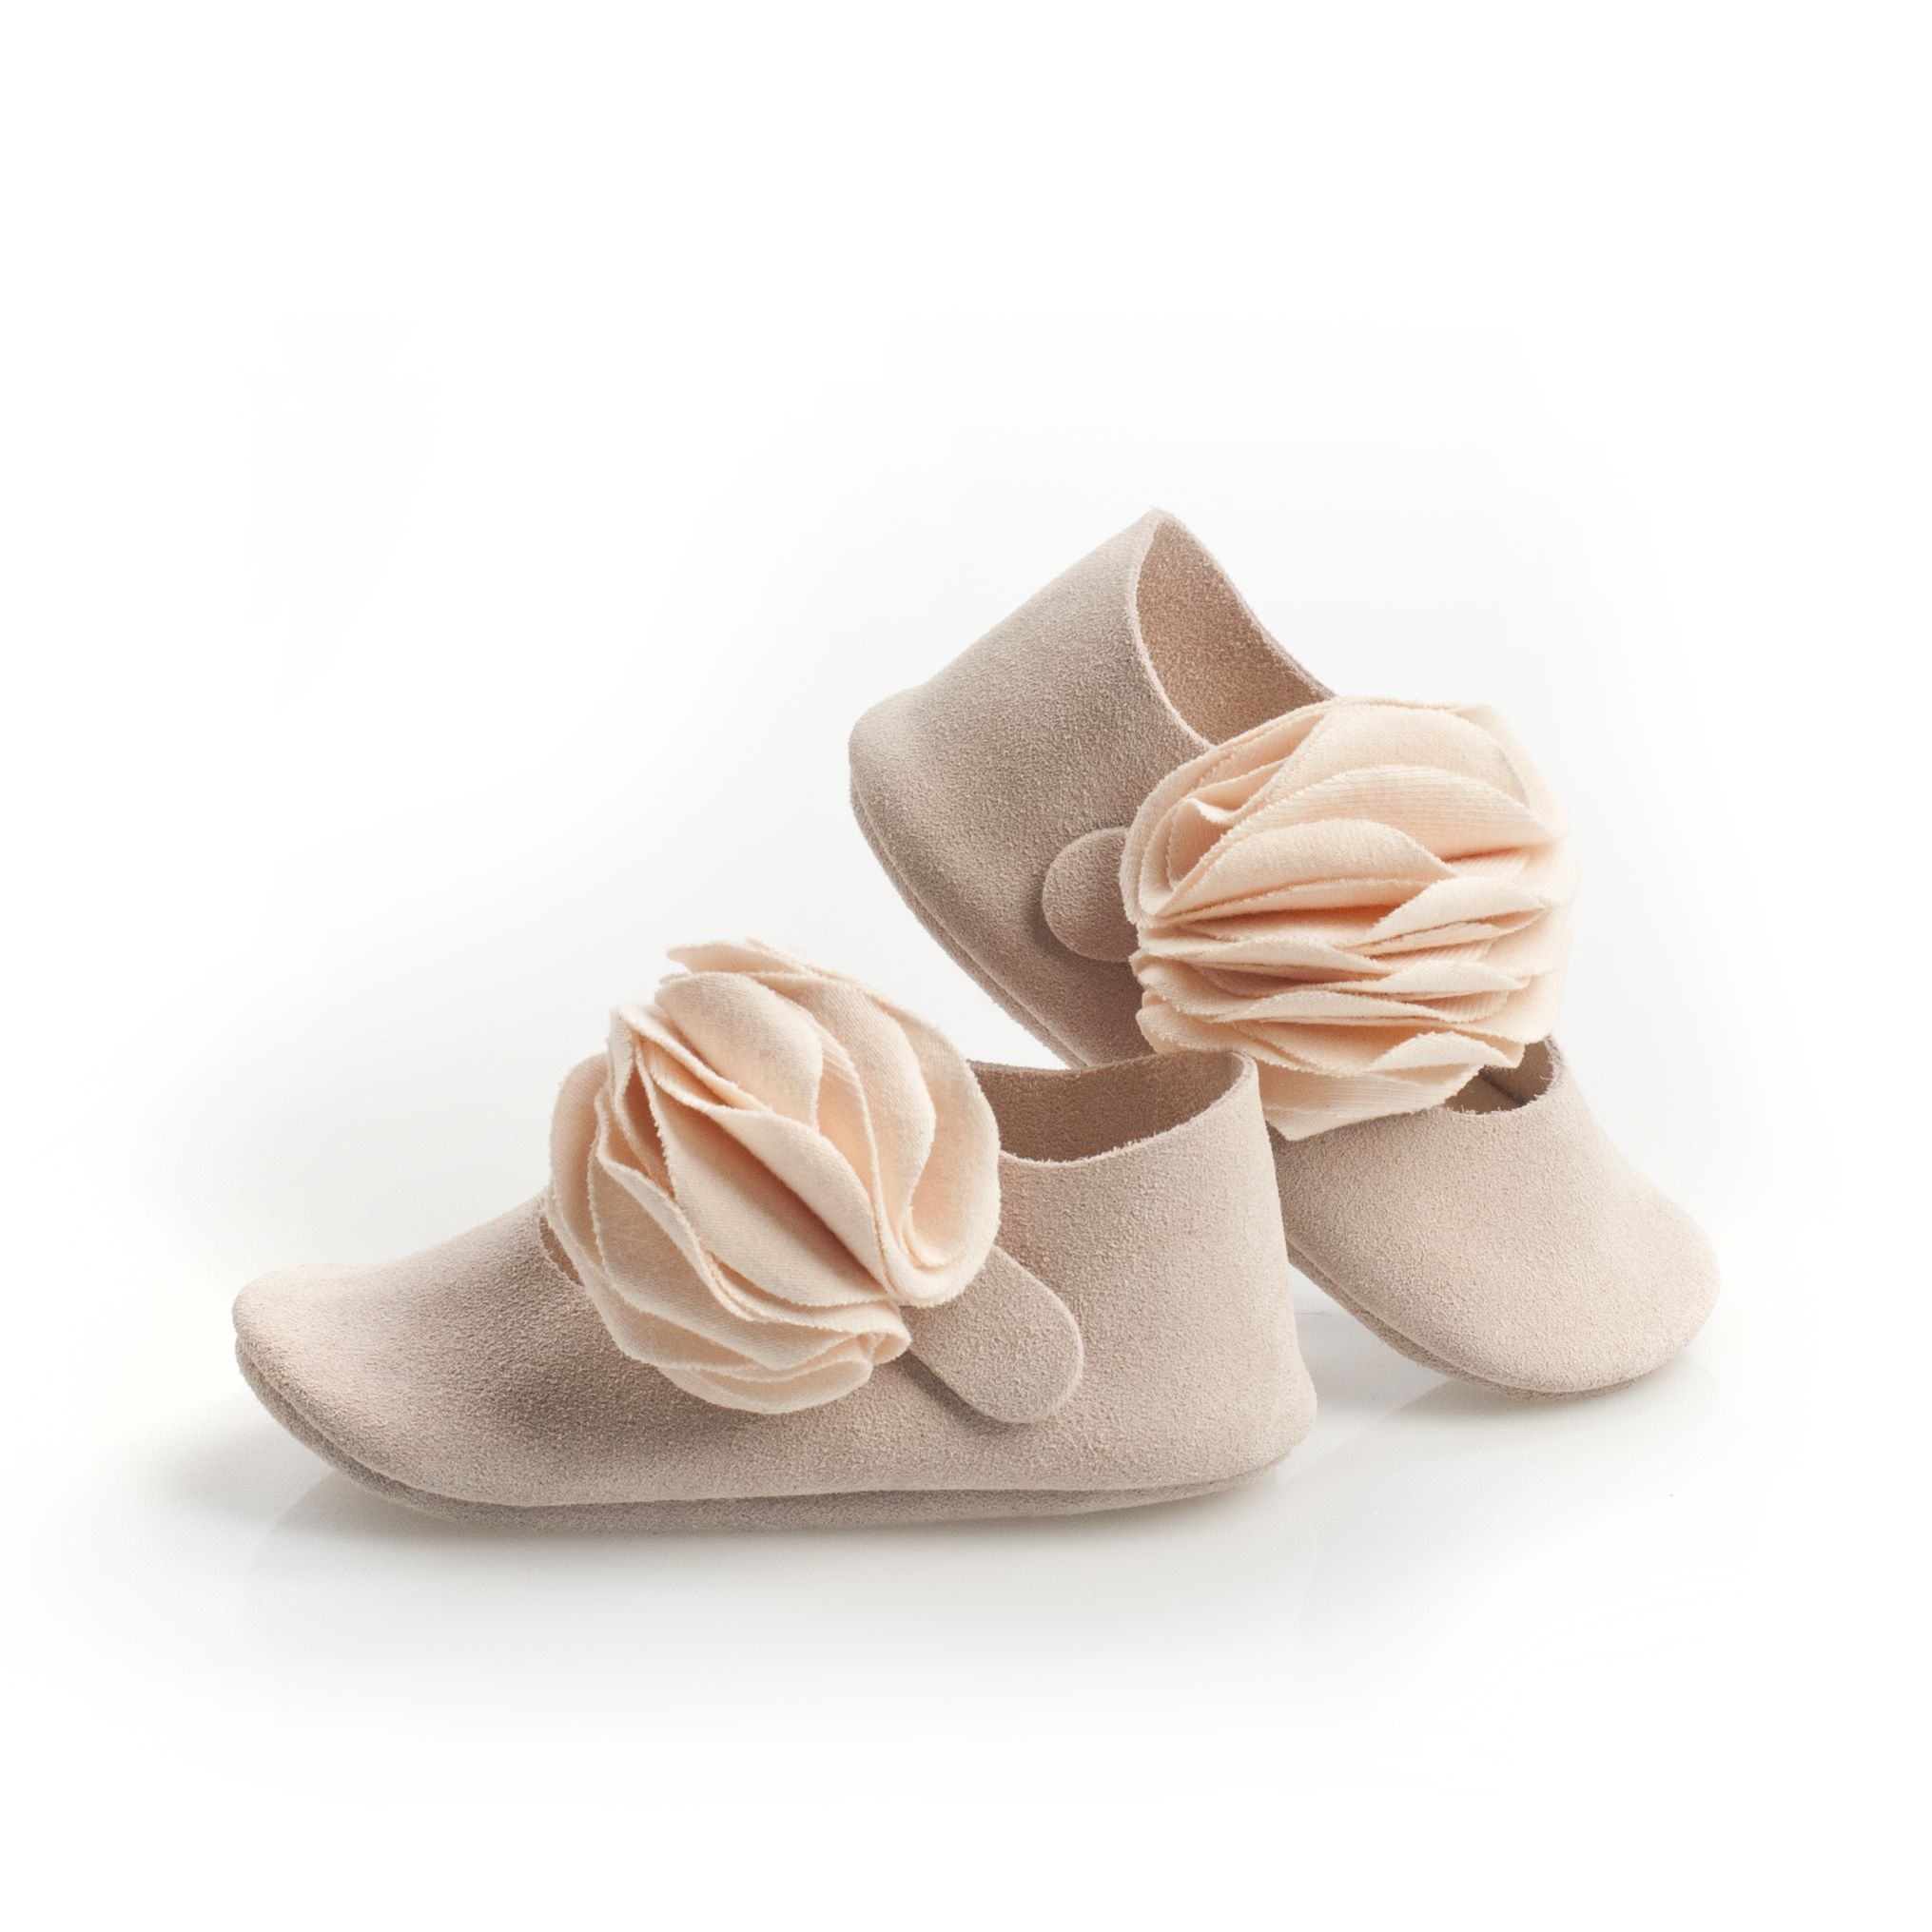 Zuzii Baby Shoes you know you want to spend $60 on baby shoes for